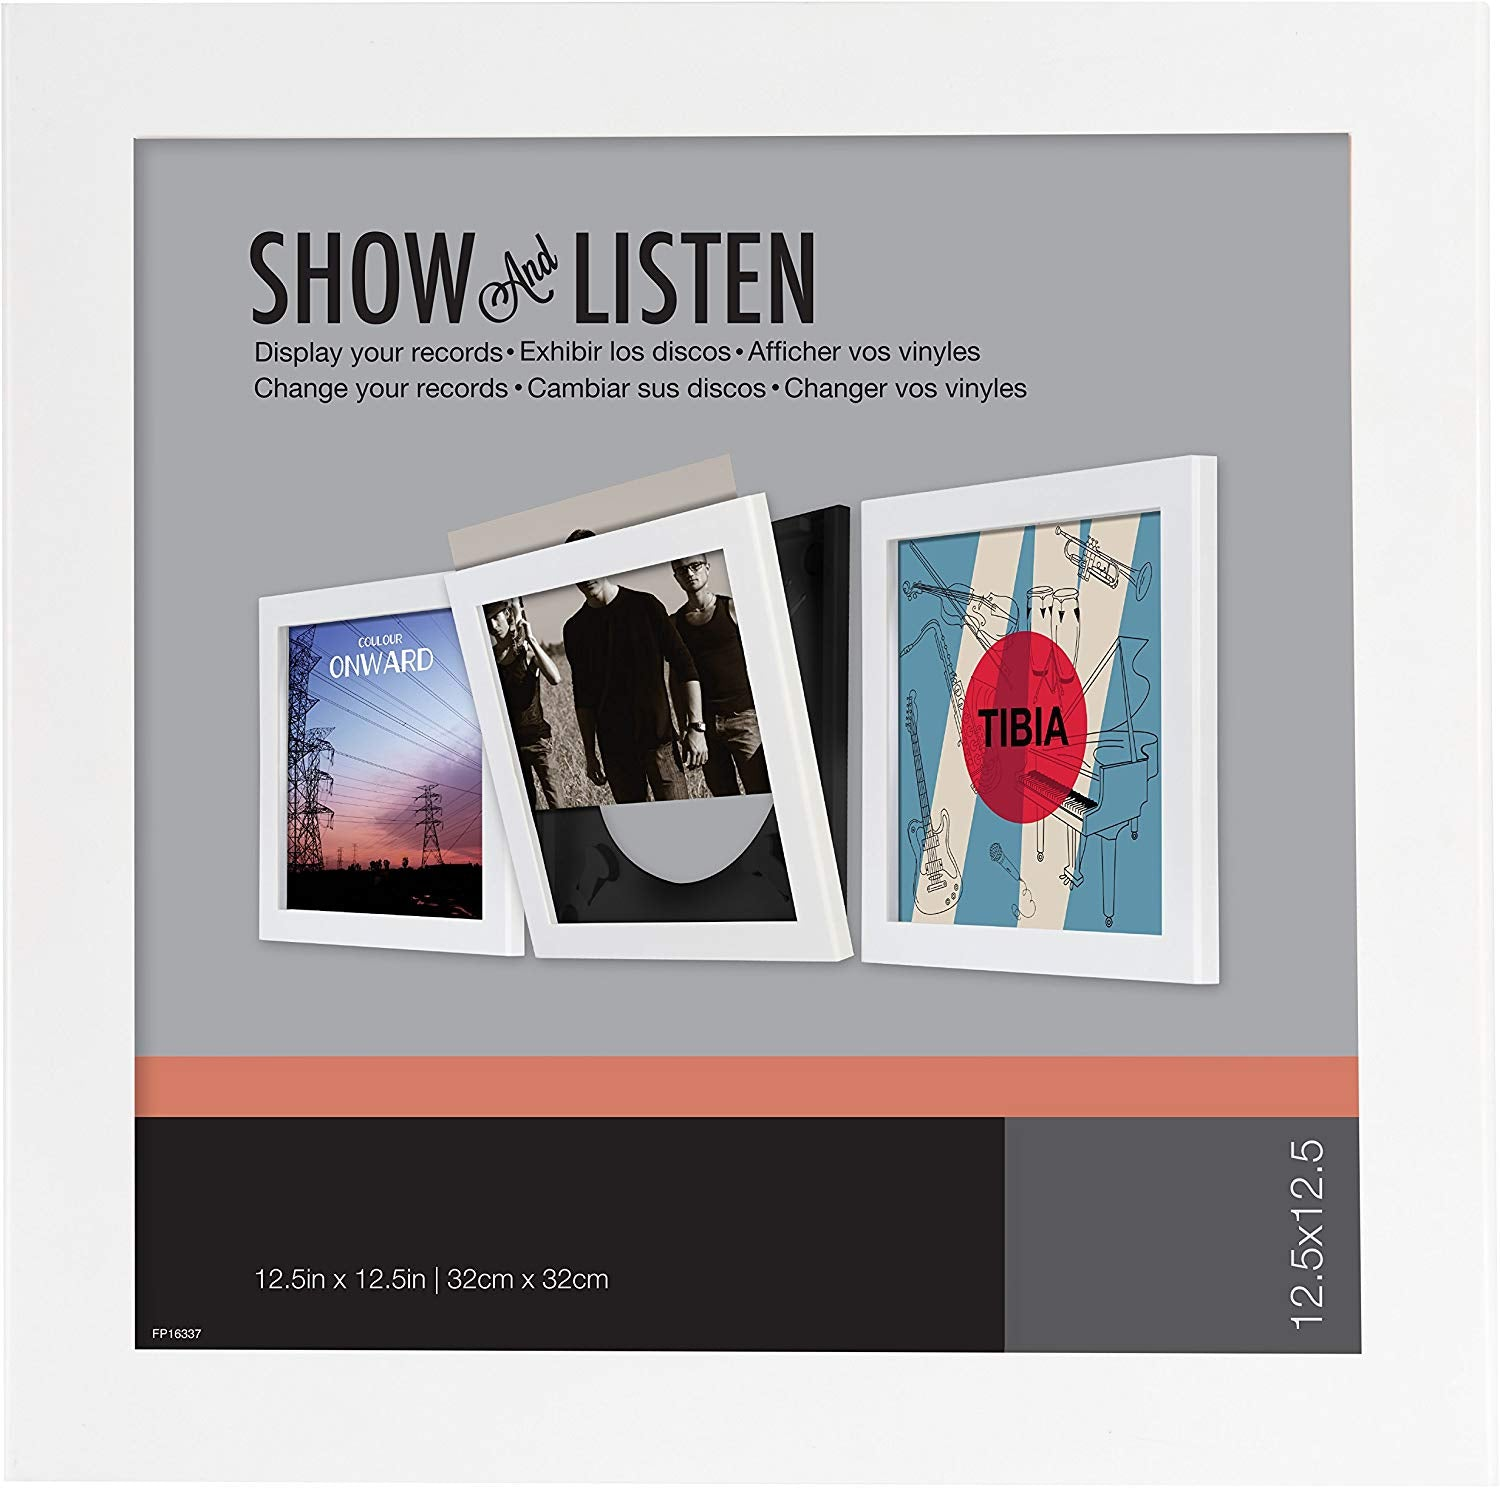 SHOW AND LISTEN LP FRAME - WHITE [Accessories]